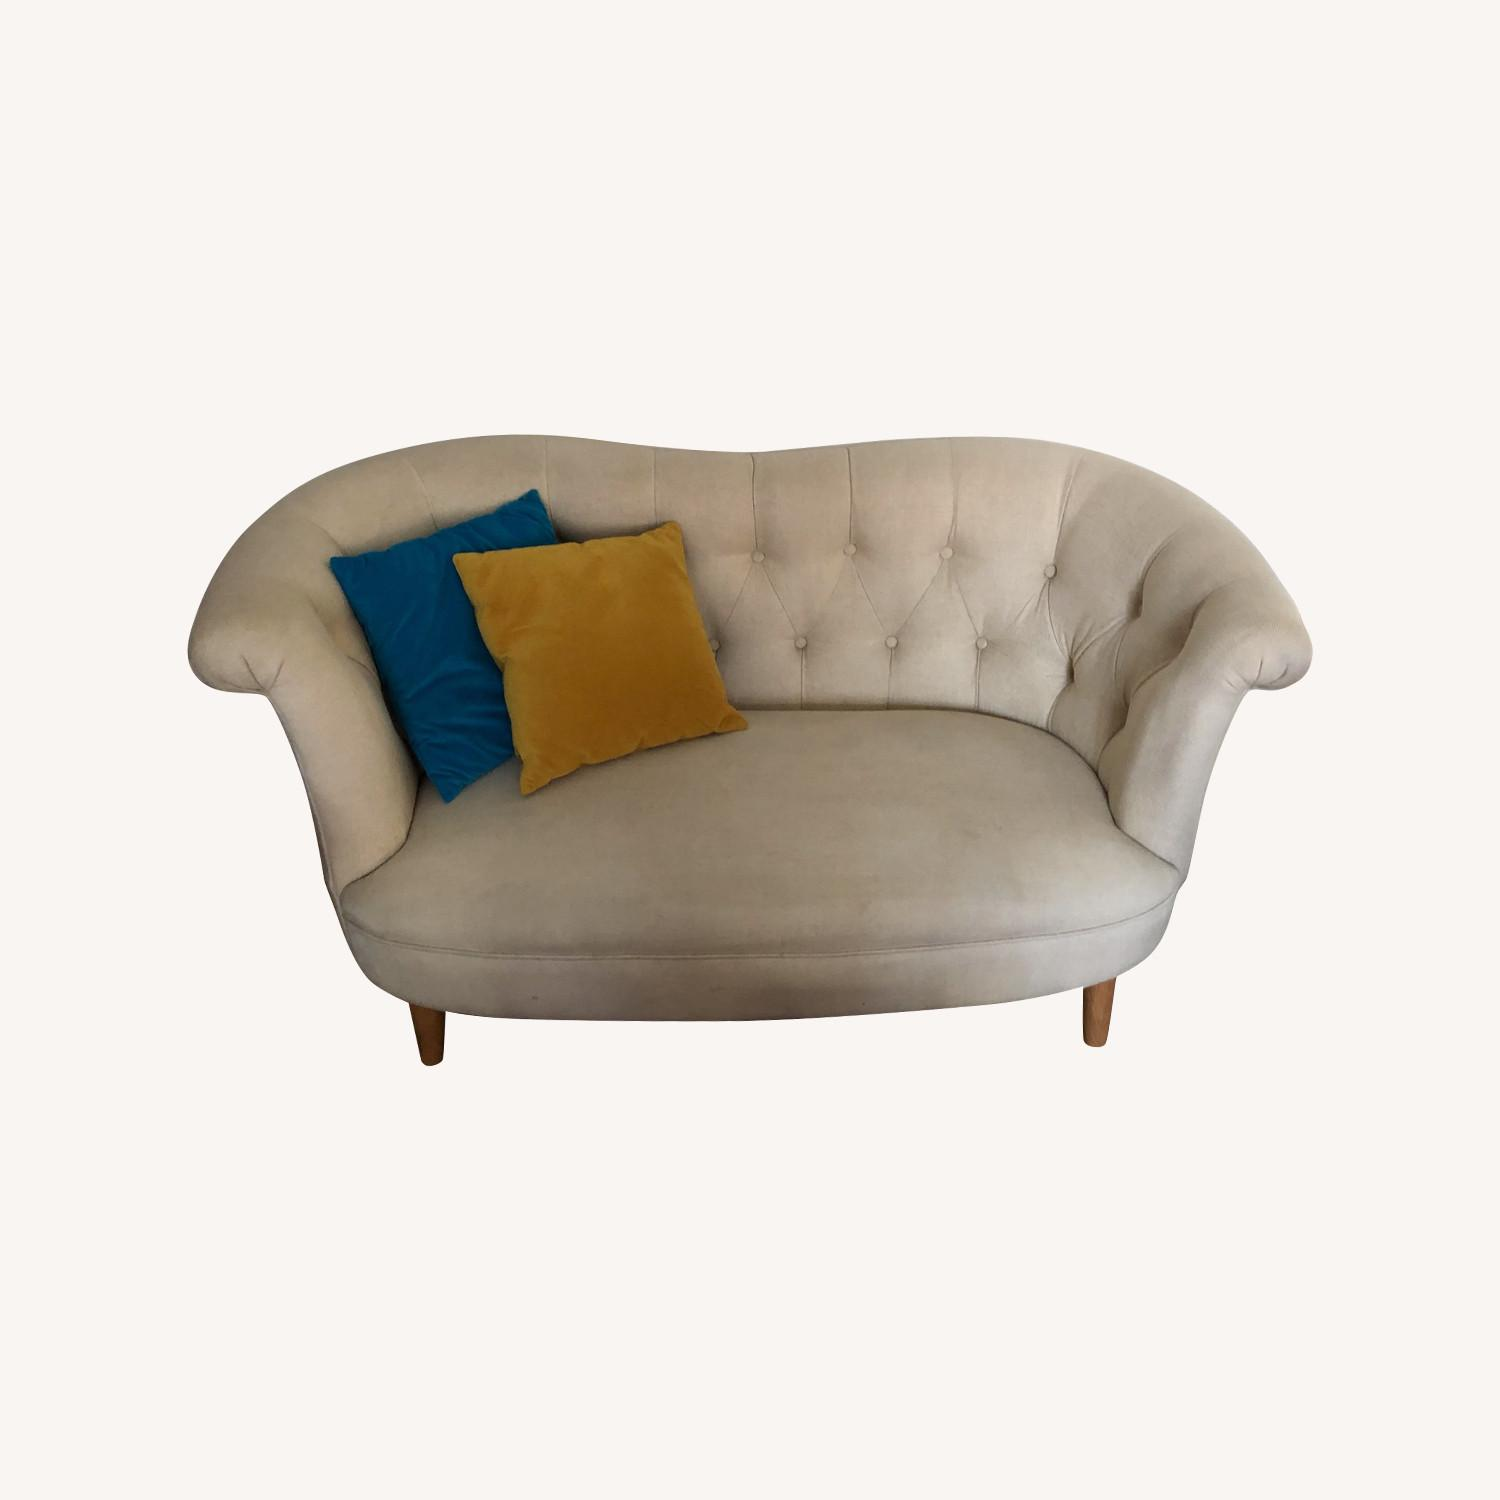 Pier 1 Tufted Loveseat - image-0